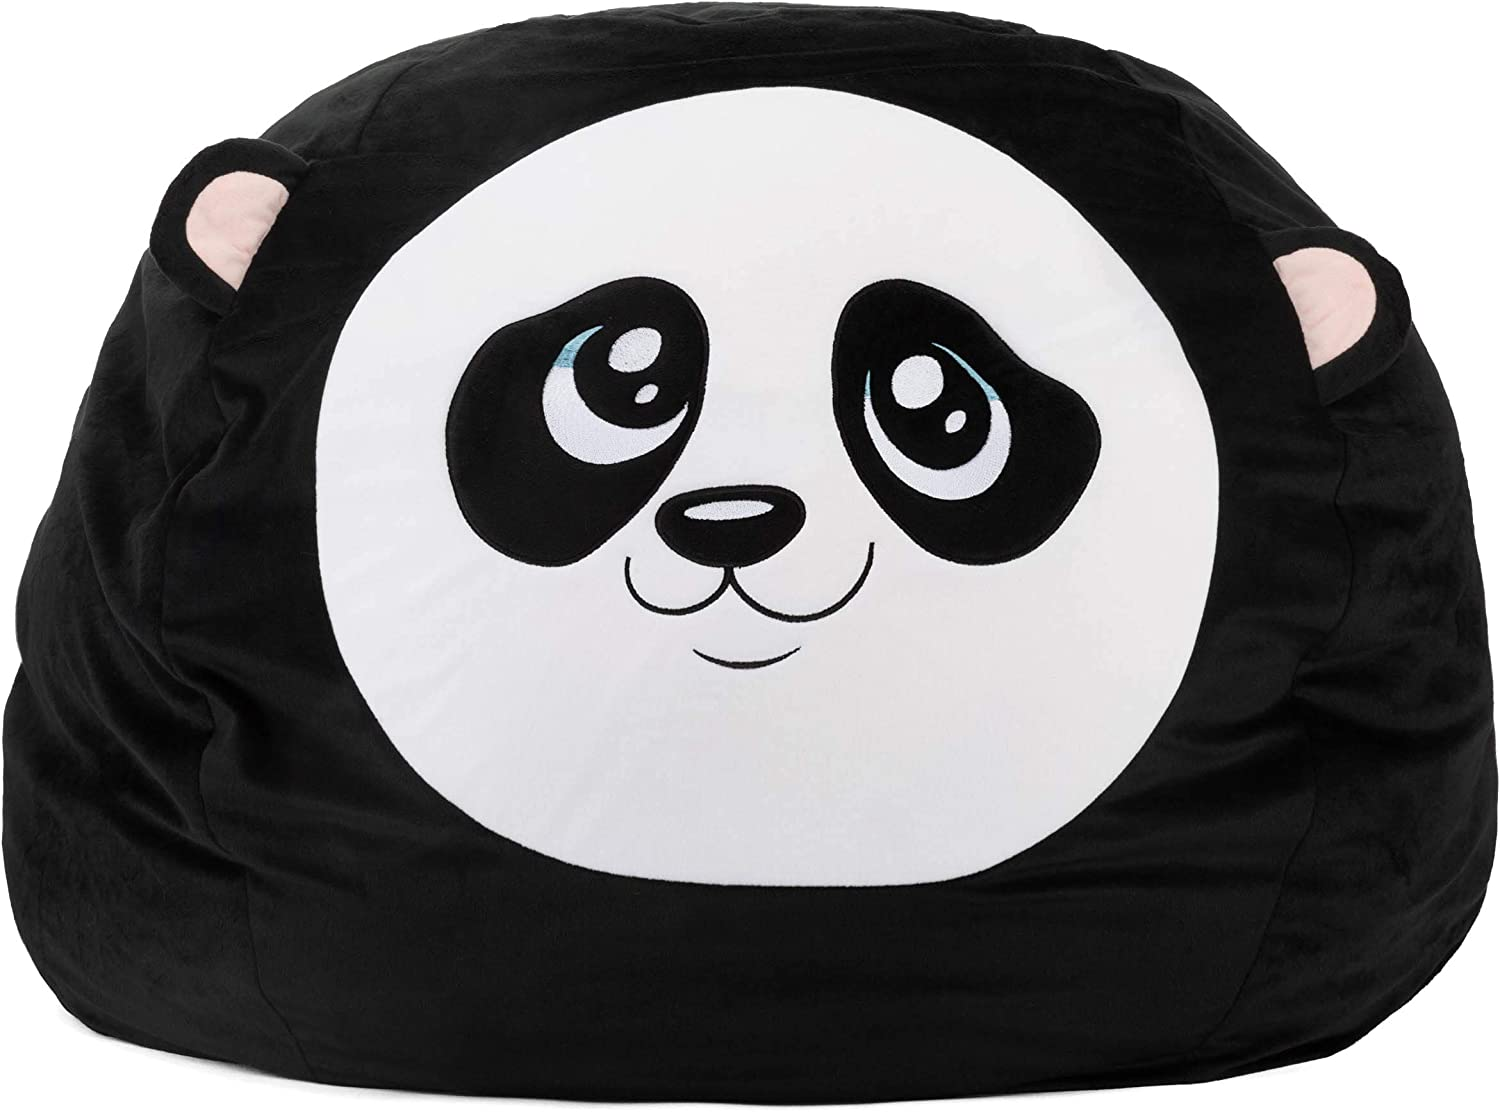 Roomganize Extra Large Animal Bean Bag Chair Cover and Soft Toy and Linen Storage Organizer for Room Decor and the Everyday Tidiness Moms Love (Panda)